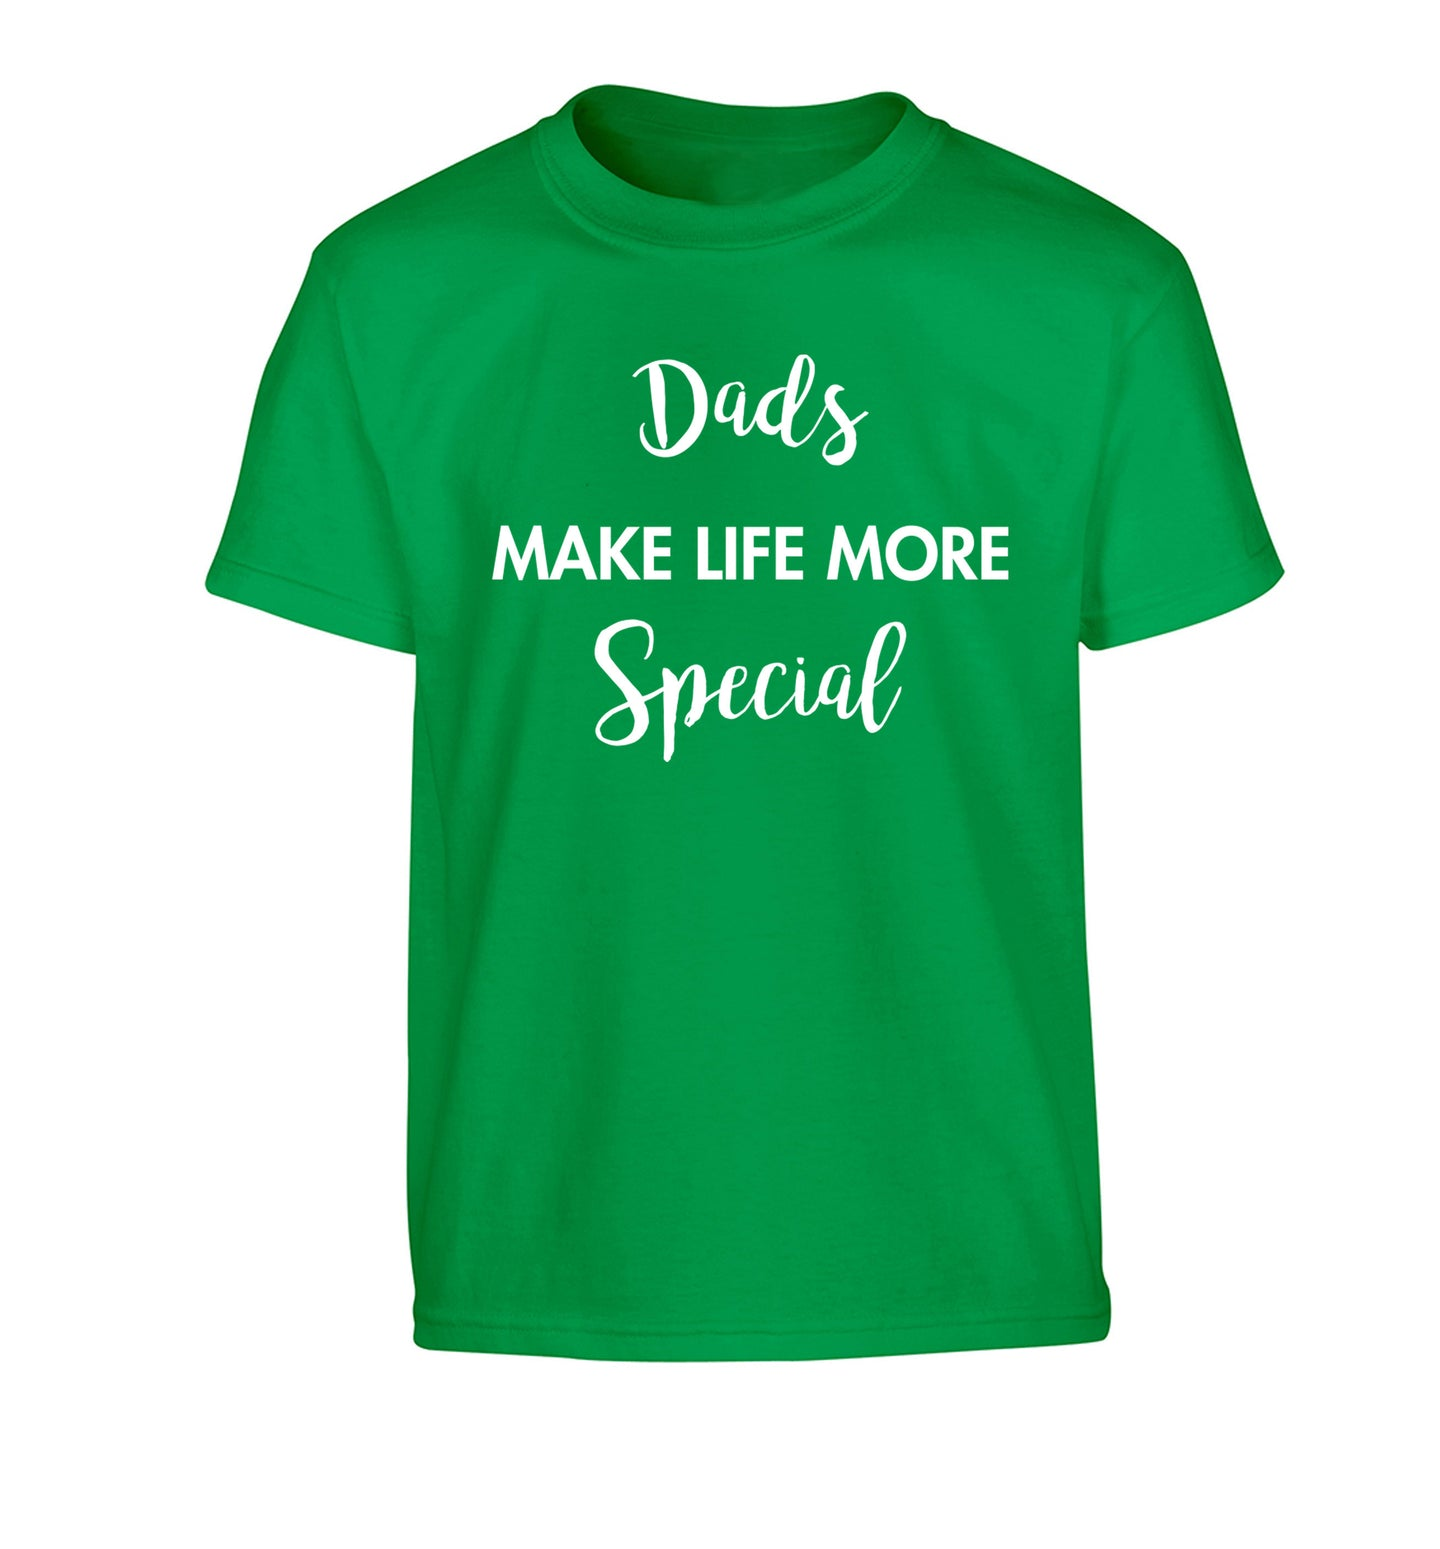 Dads make life more special Children's green Tshirt 12-14 Years